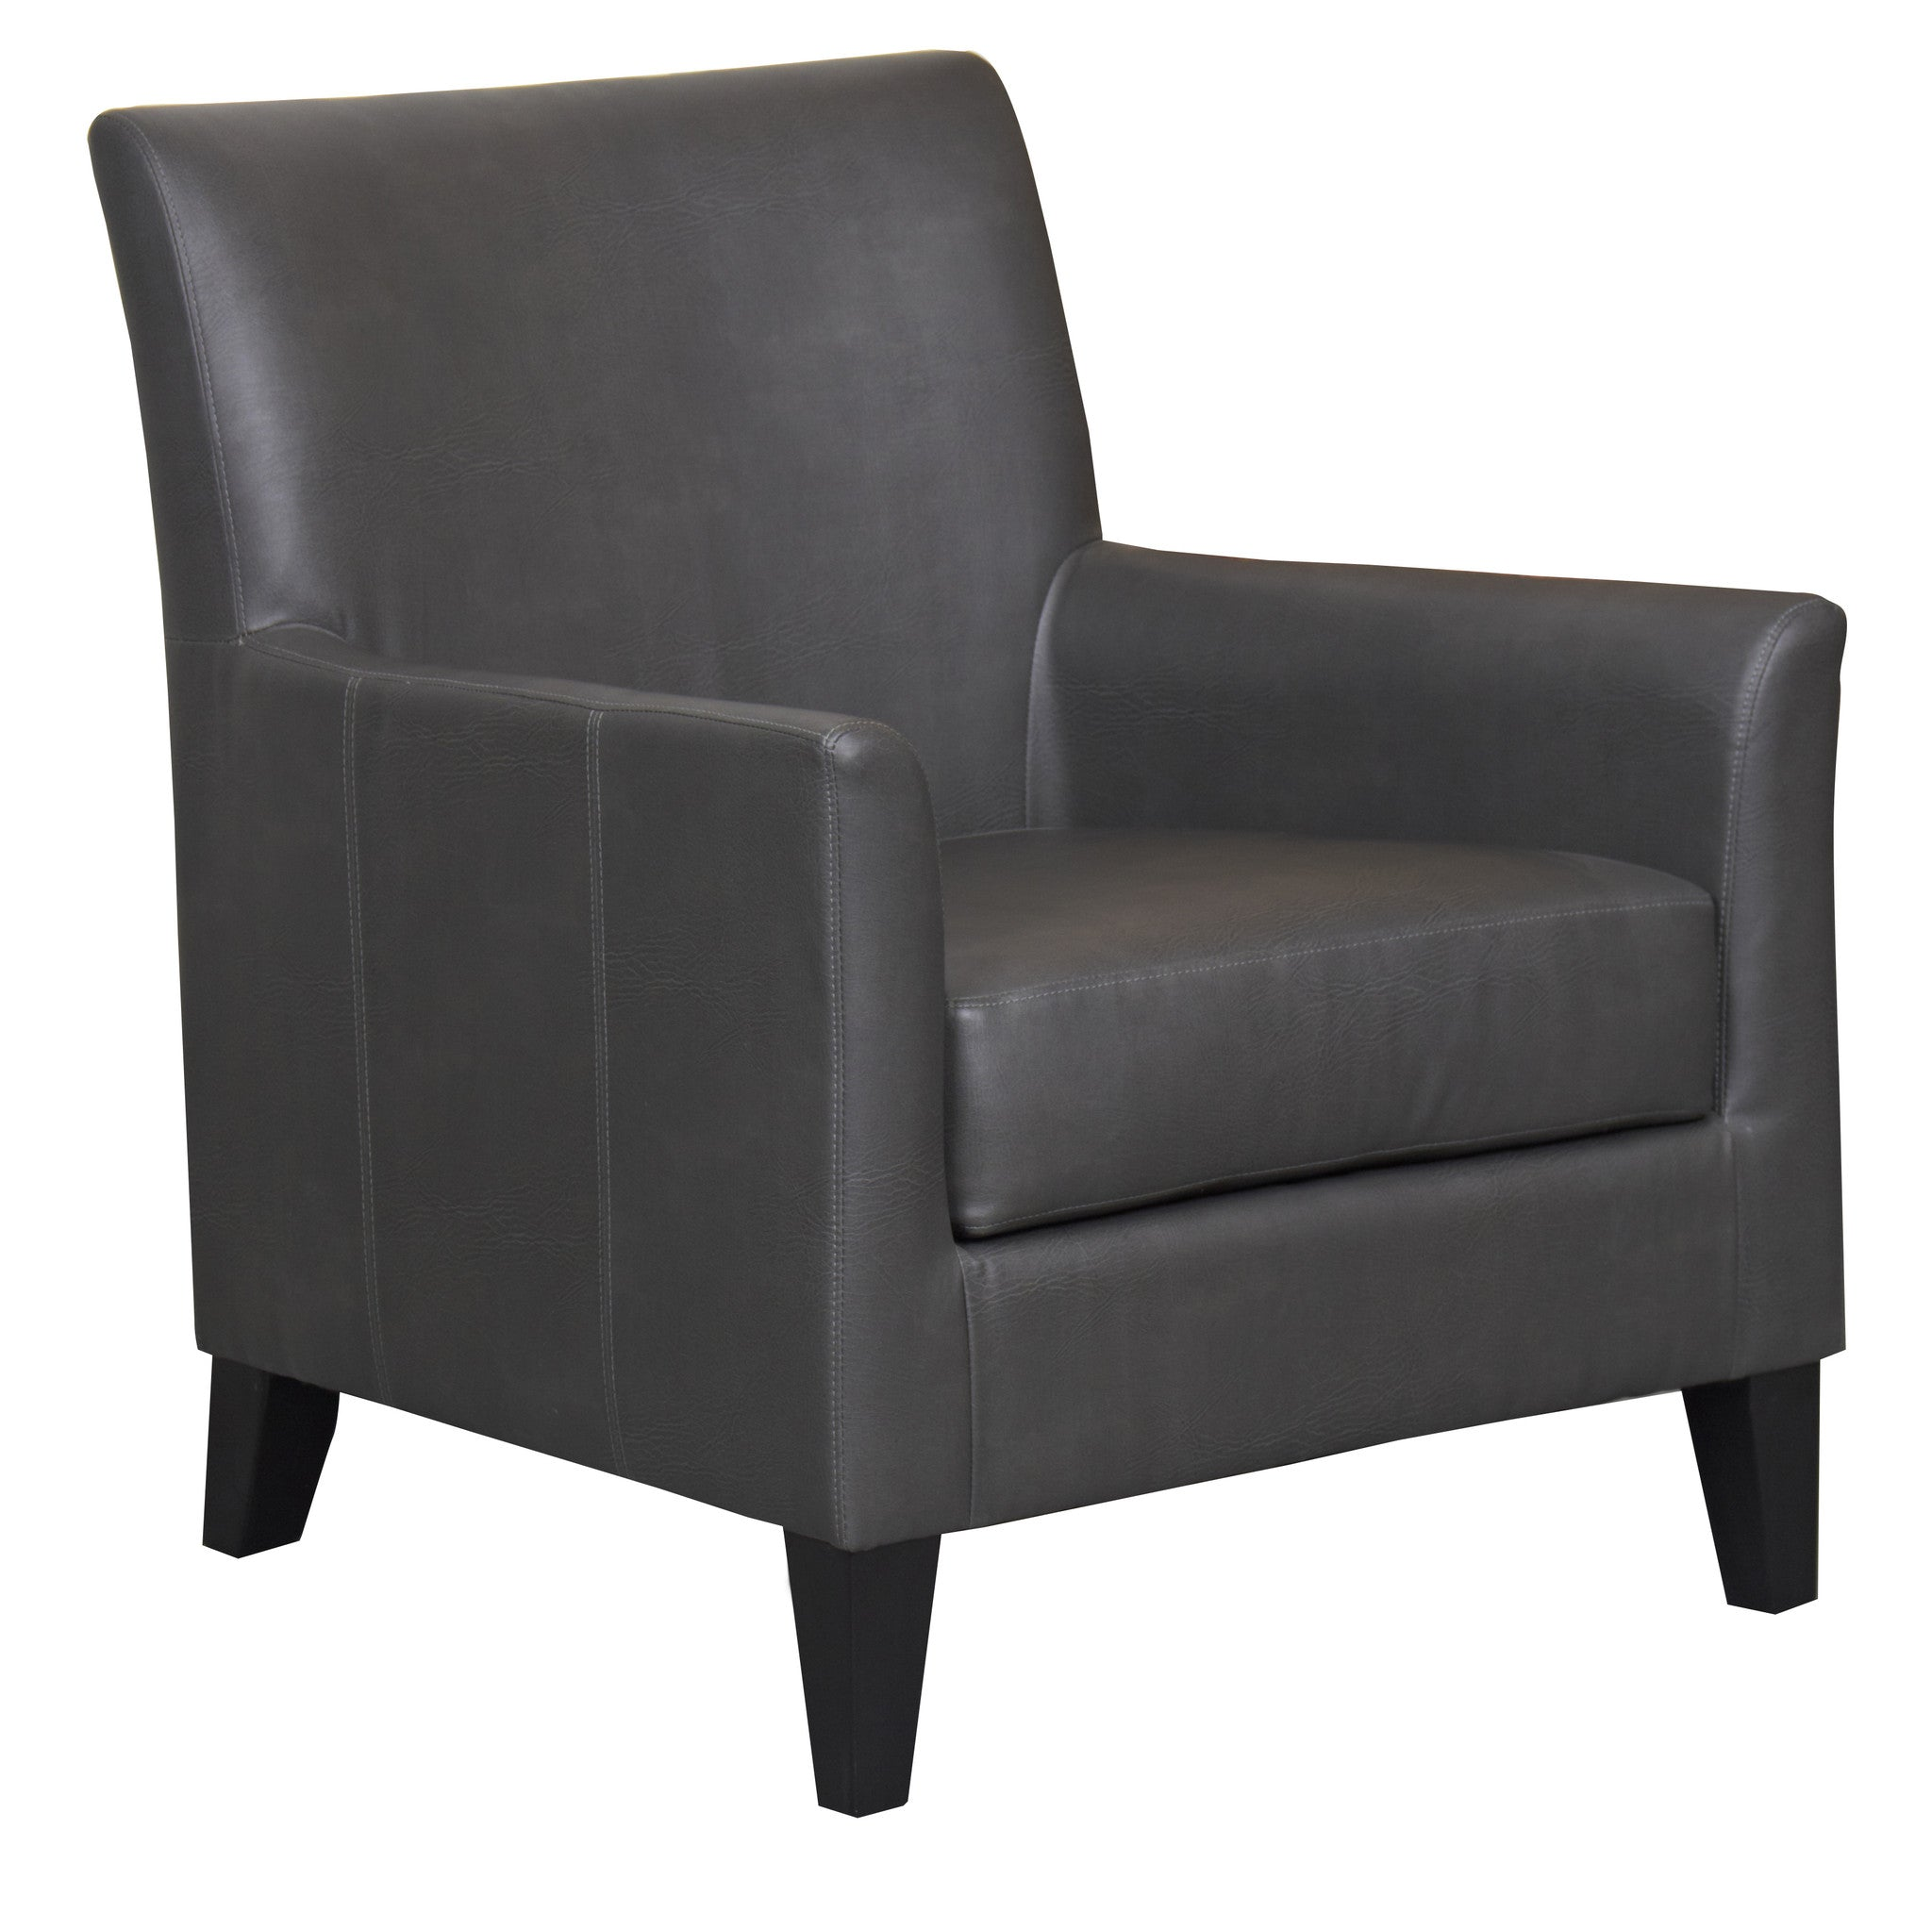 Era Accent Chair in Grey trendyshoppingmall